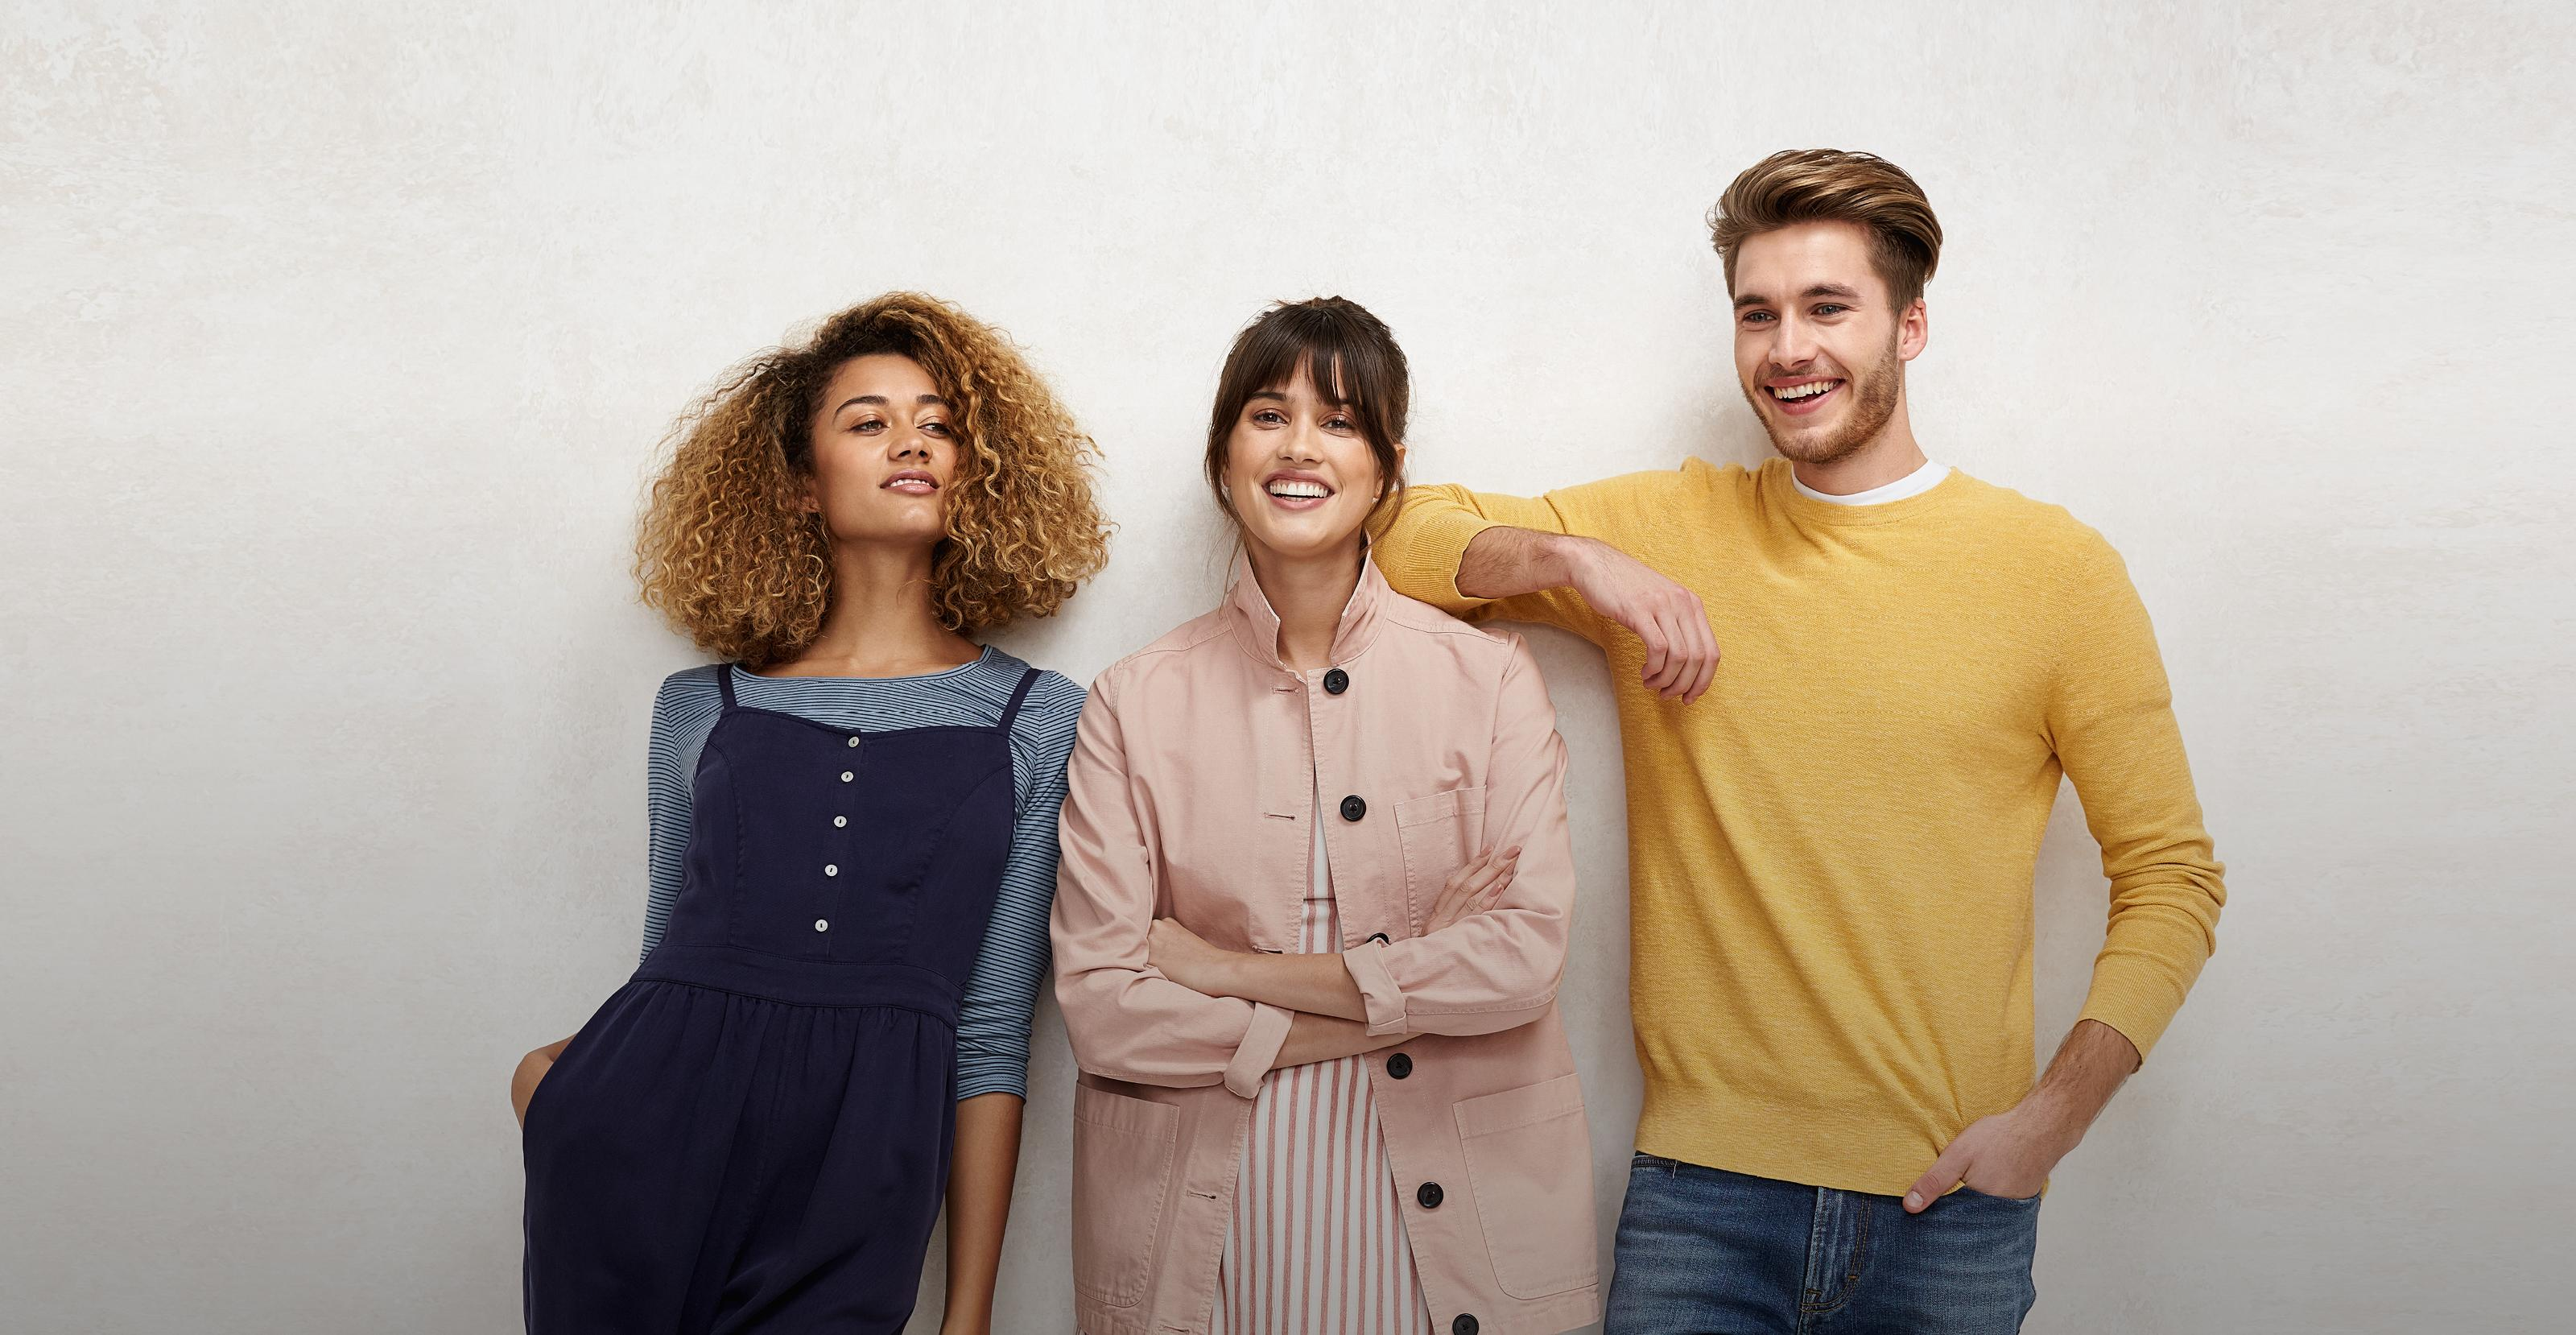 Two female models wearing a blue dress and pink jacket and one male model wearing a yellow jumper